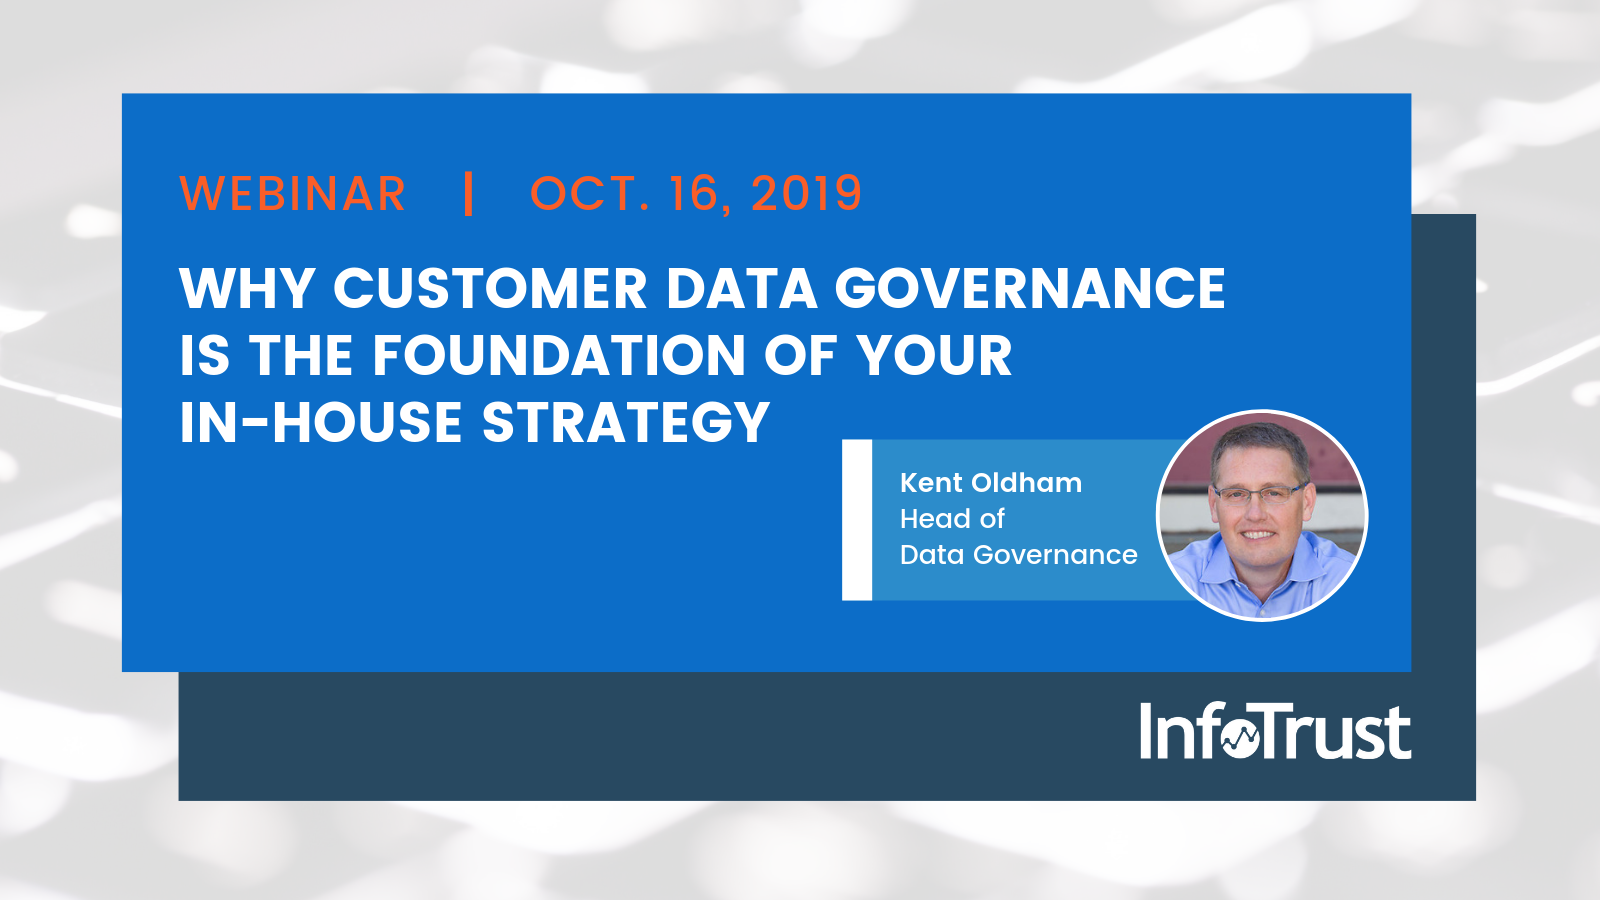 Why Customer Data Governance Is the Foundation of Your In-House Strategy